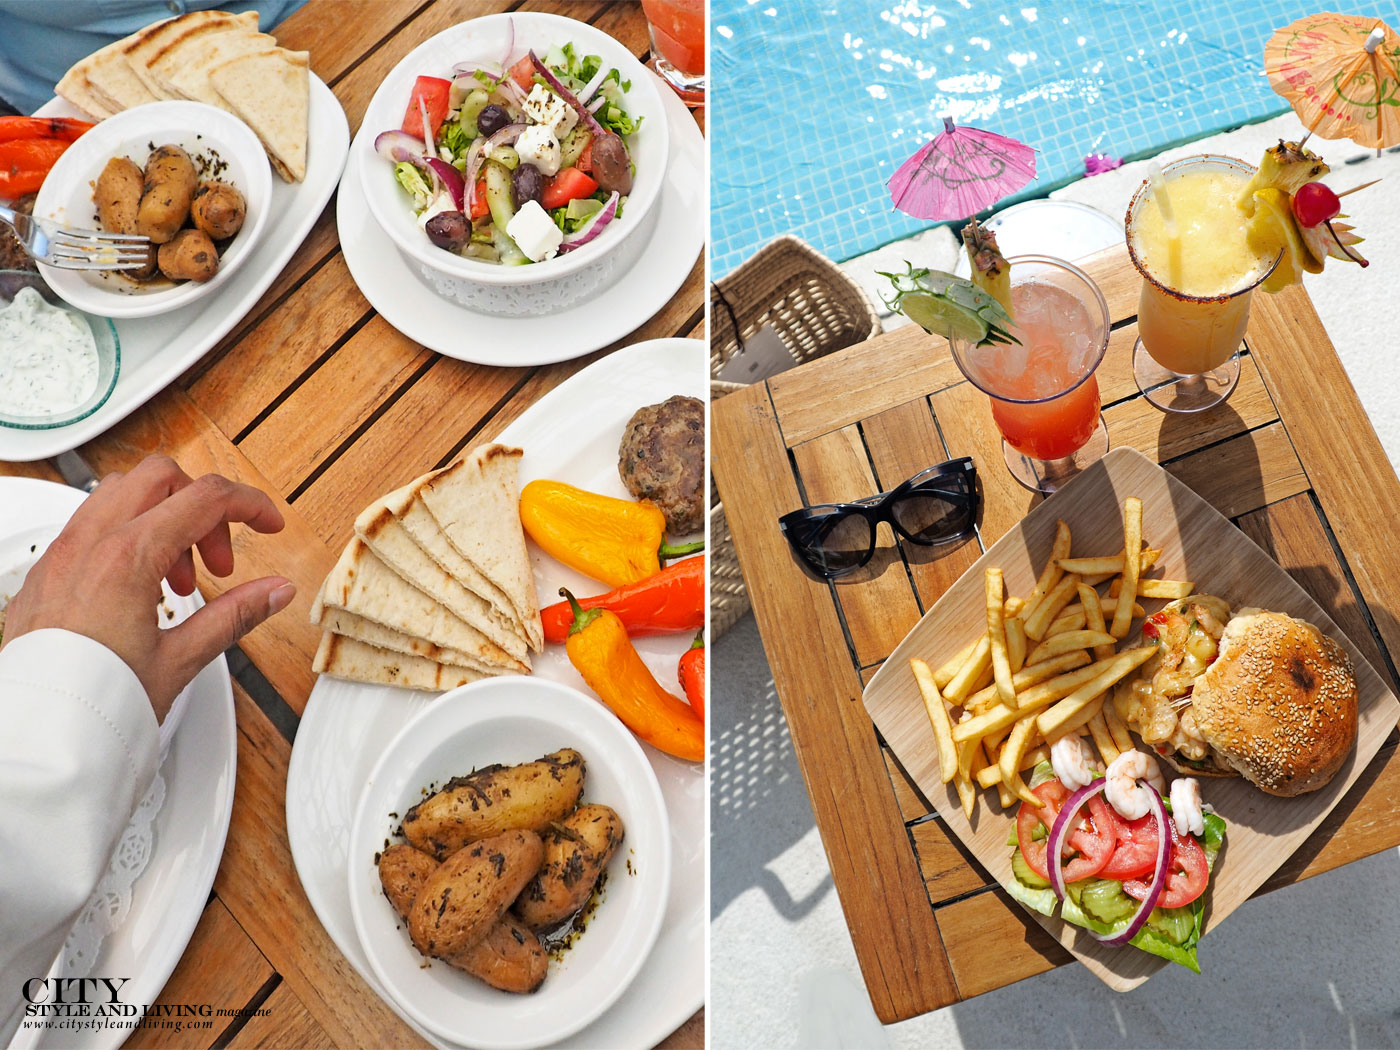 City Style and Living Magazine Summer Barbeque entertaining